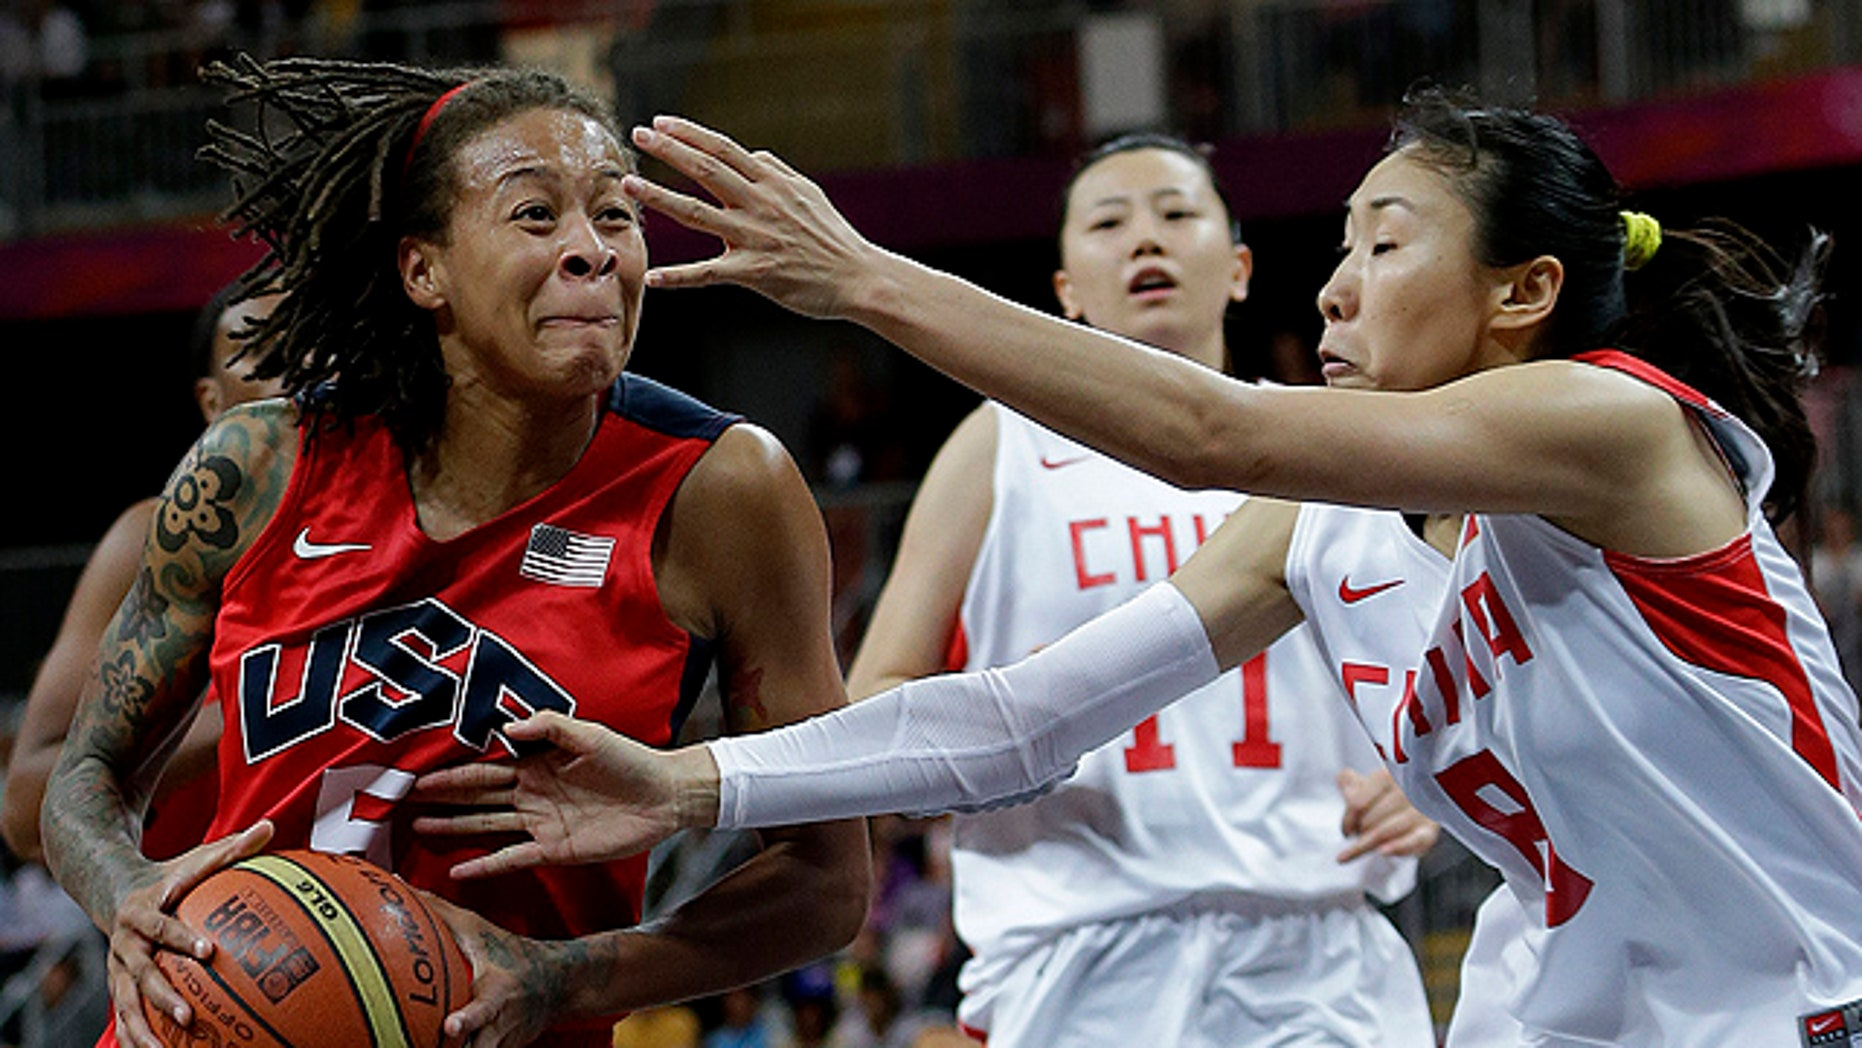 Aug. 5: USA's Seimone Augustus, left, drives past China defenders Miao Lijie (8) and Ma Zengyu (11) during a preliminary women's basketball game at the 2012 Summer Olympics. Team USA will meet France on Saturday for a chance to take home gold. (AP)